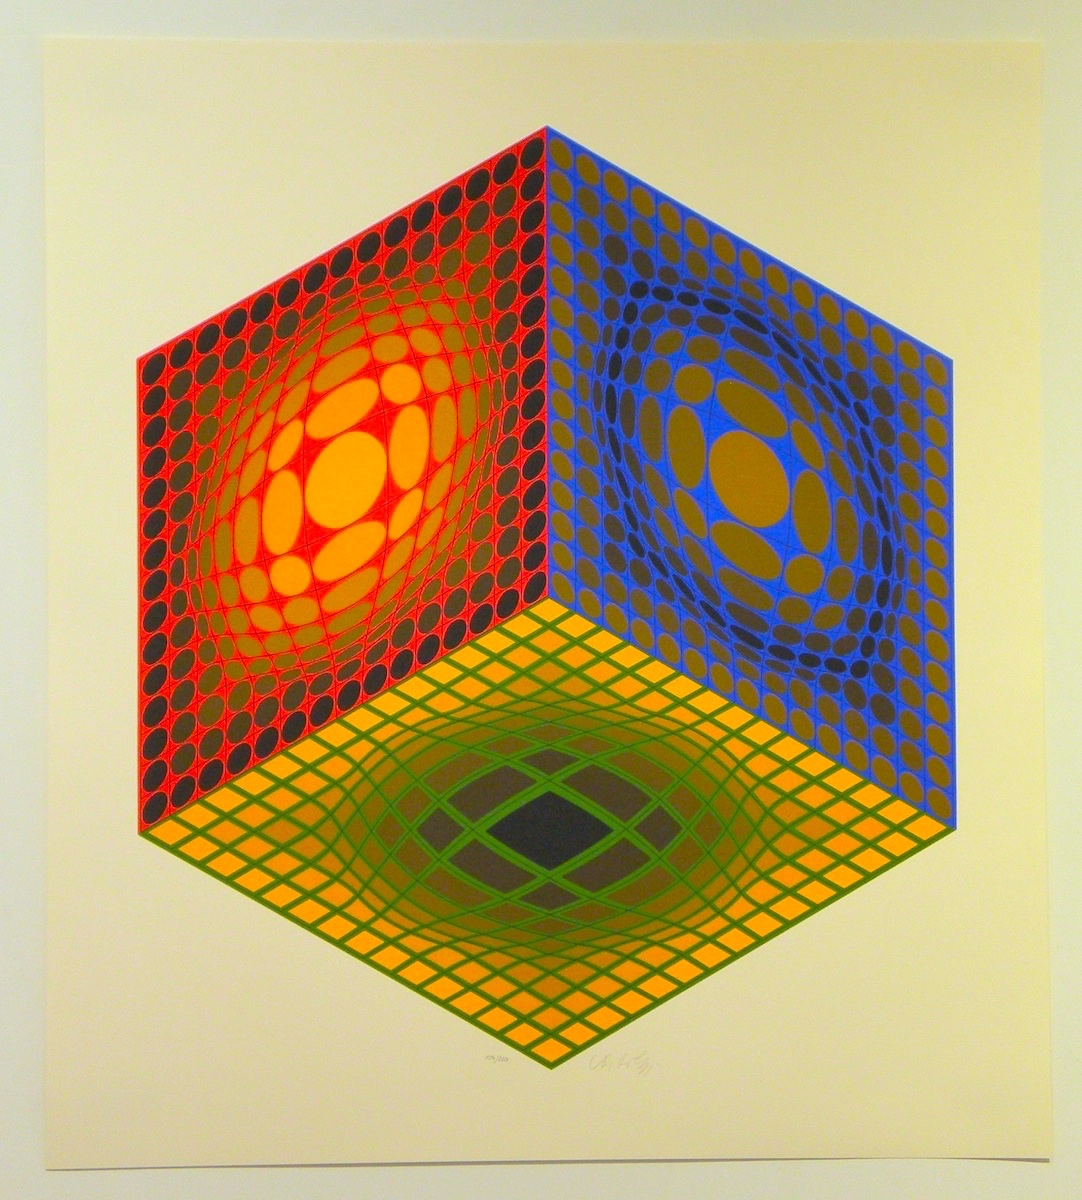 Cube by Victor Vasarely